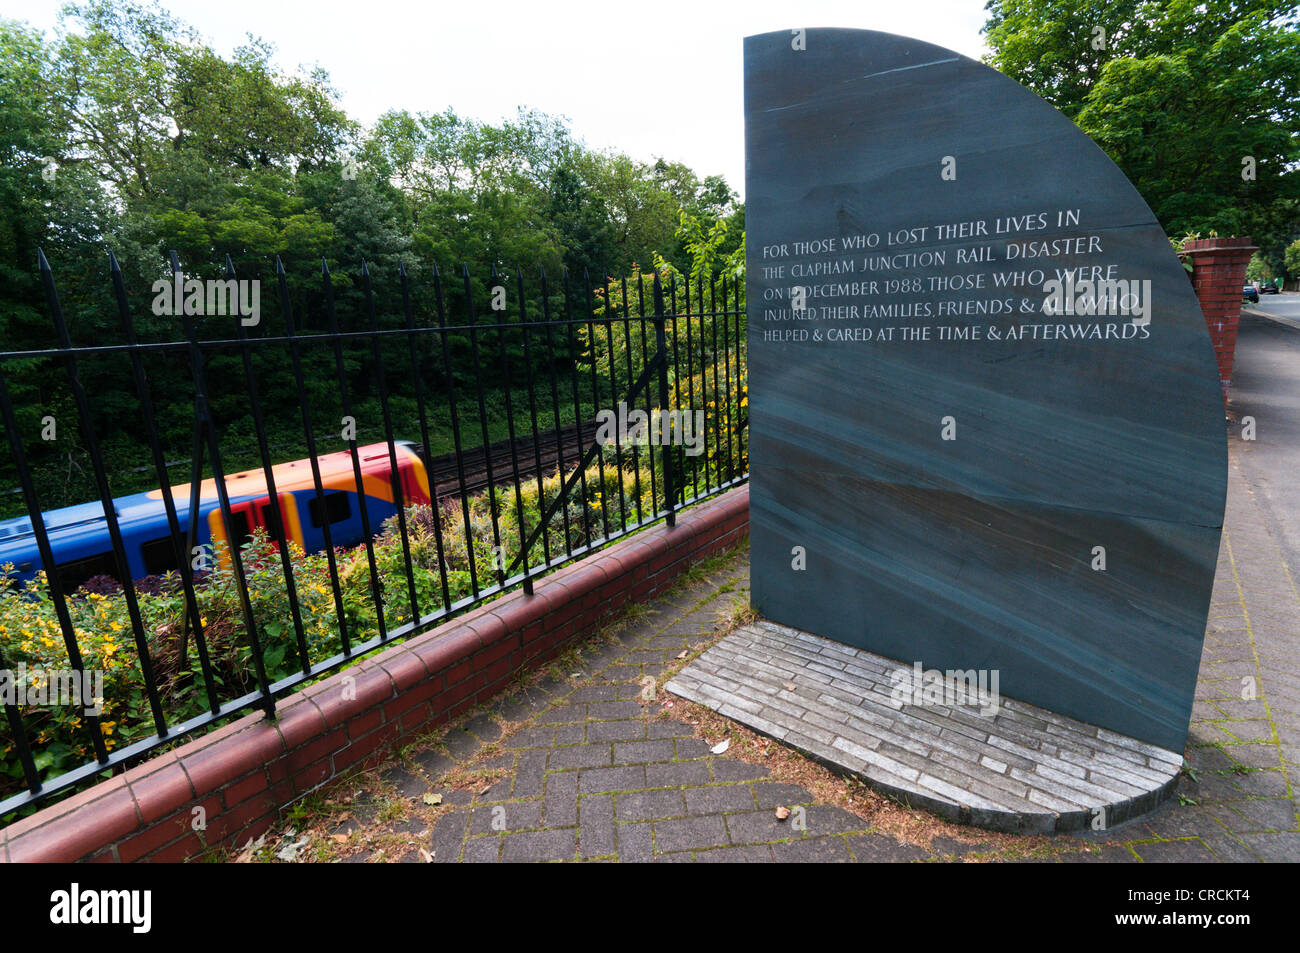 The memorial to those involved in the Clapham Junction Rail Disaster. - Stock Image